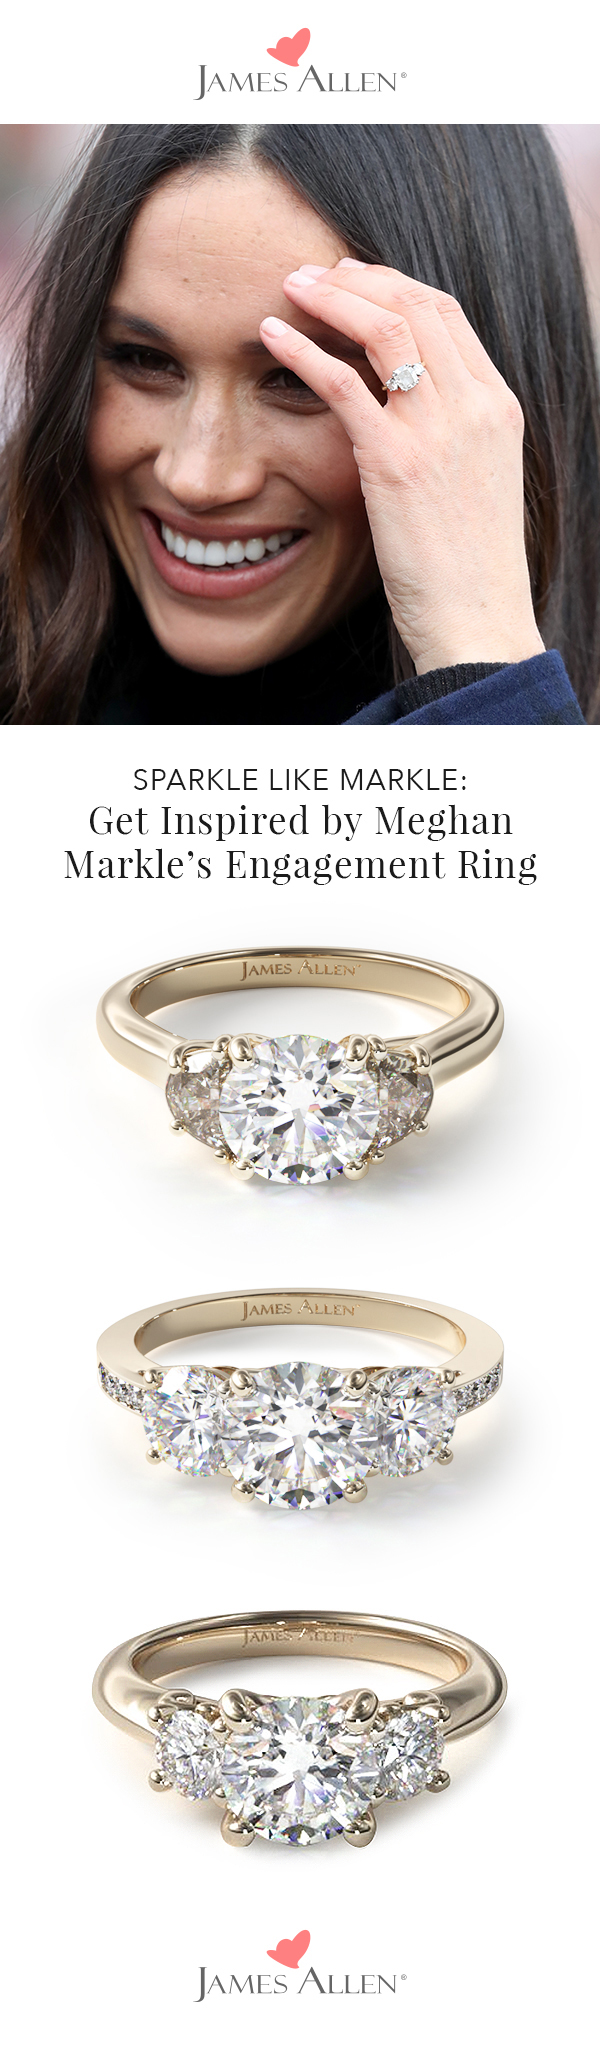 get inspired by meghan markle s engagement ring the james allen engagement ring blog meghan markle s engagement ring